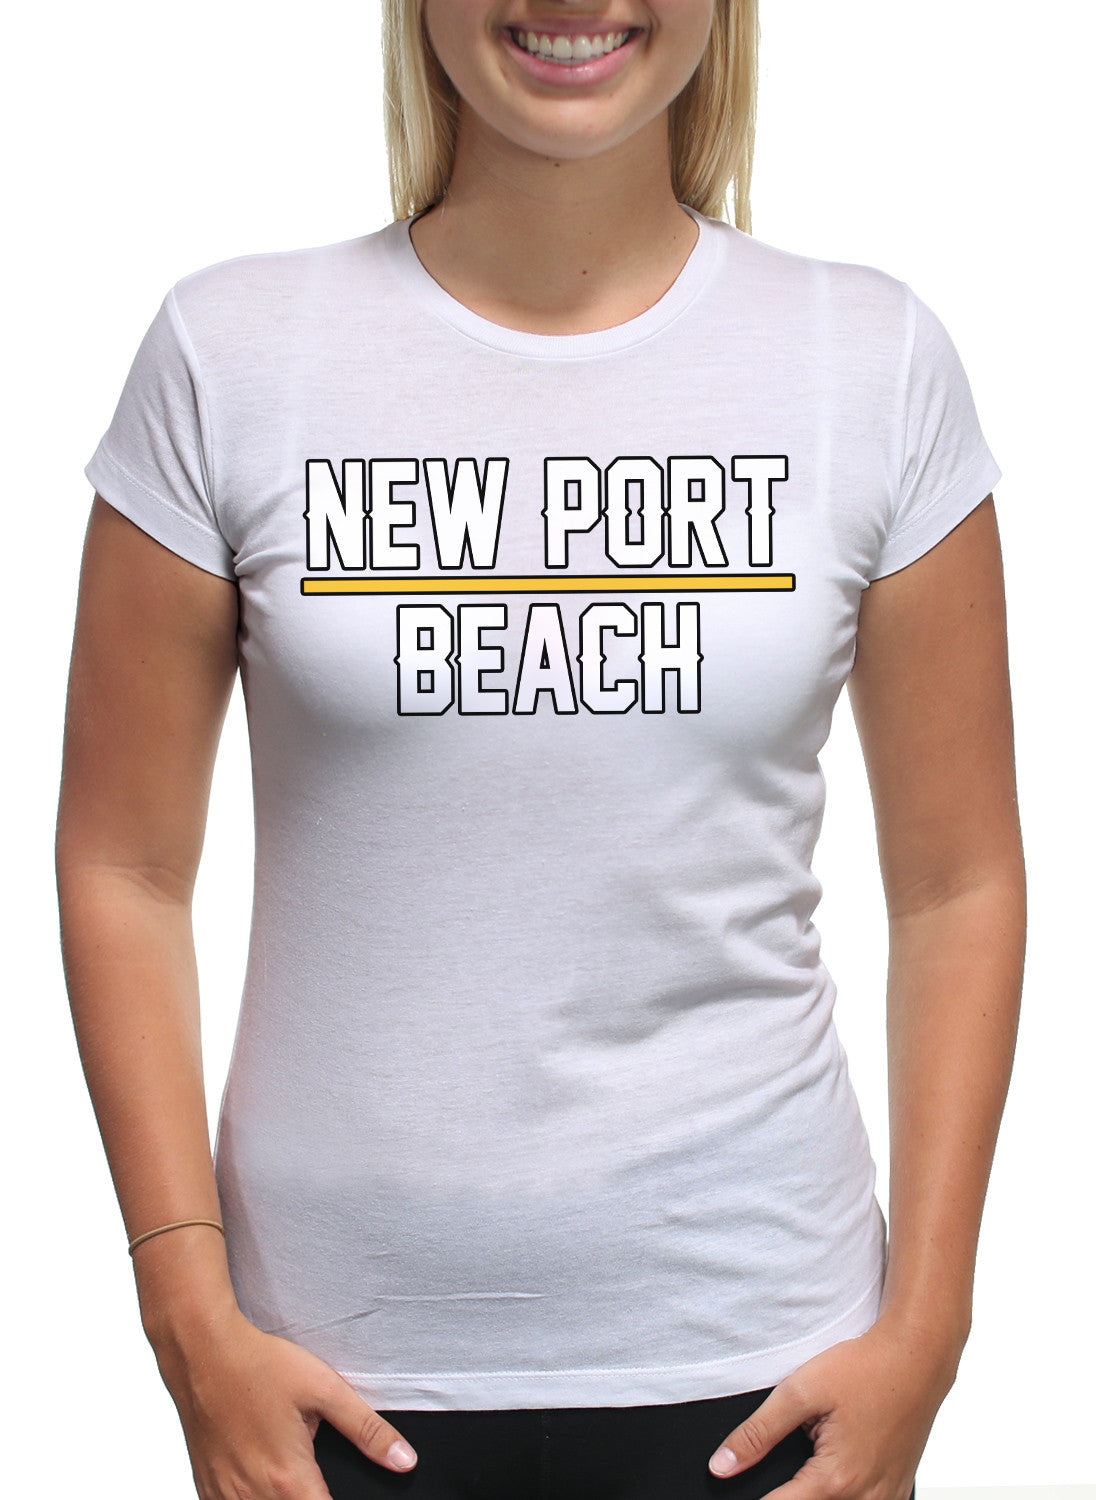 New Port Beach Vacation Proud